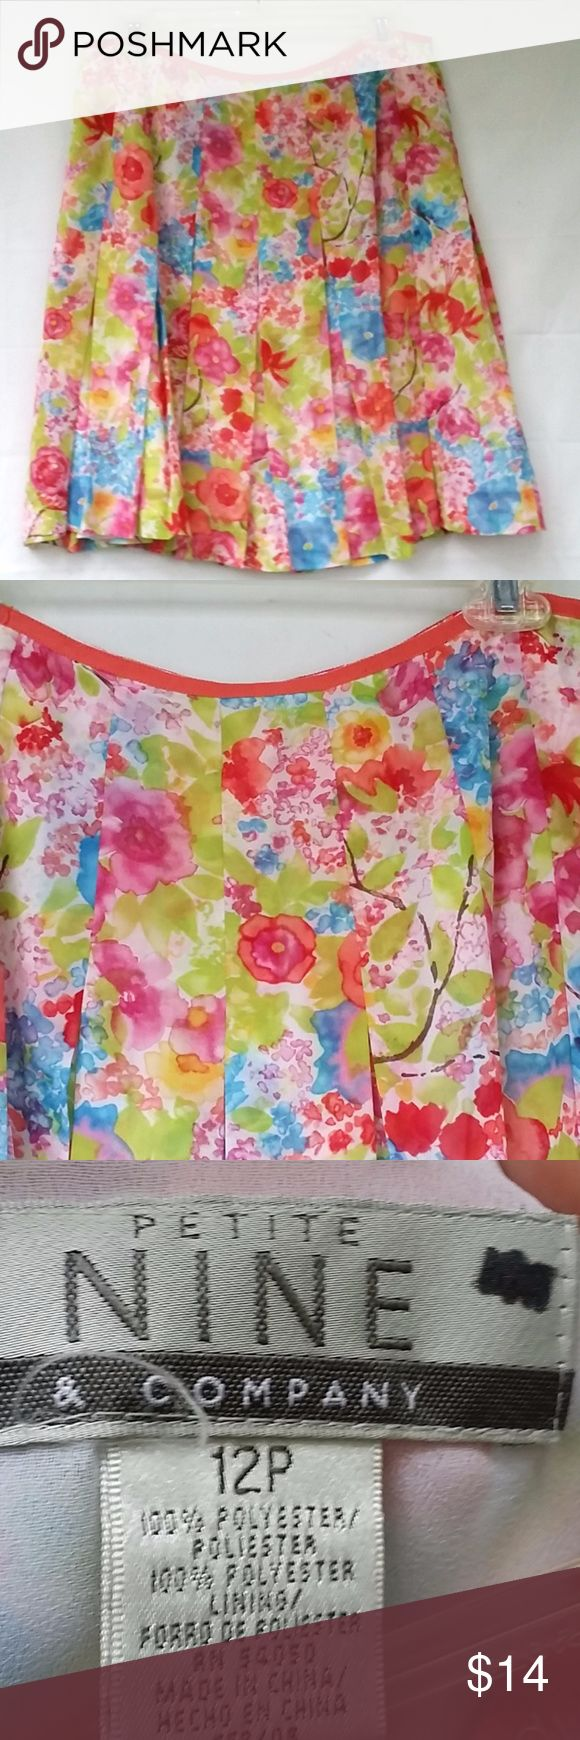 Nine Co Skirt 12 Petite Floral Print Pleated Nine & Co Nine West Women's Floral Print Pleated Career Skirt Size 12 Petite Gently used condition.  Has back zipper closure and lining.  Approx waist 30.5 and length 21 Multicolor Above knee Polyester Nine & Co. Skirts